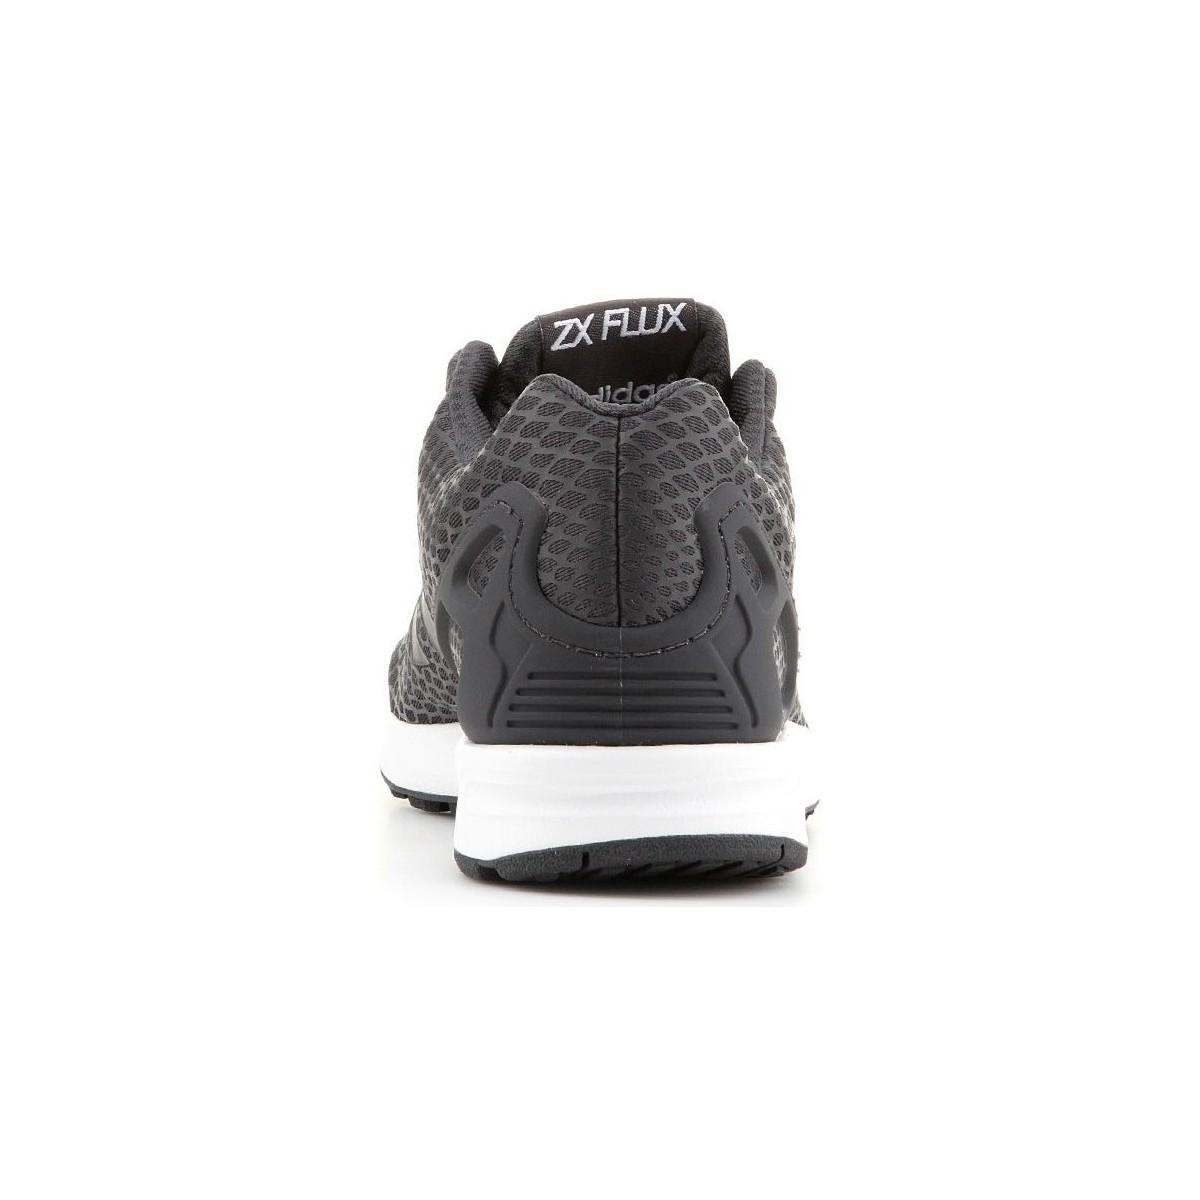 brand new a9636 c34b9 Adidas - Zx Flux Techfit S75488 Men s Shoes (trainers) In Black for Men -.  View fullscreen